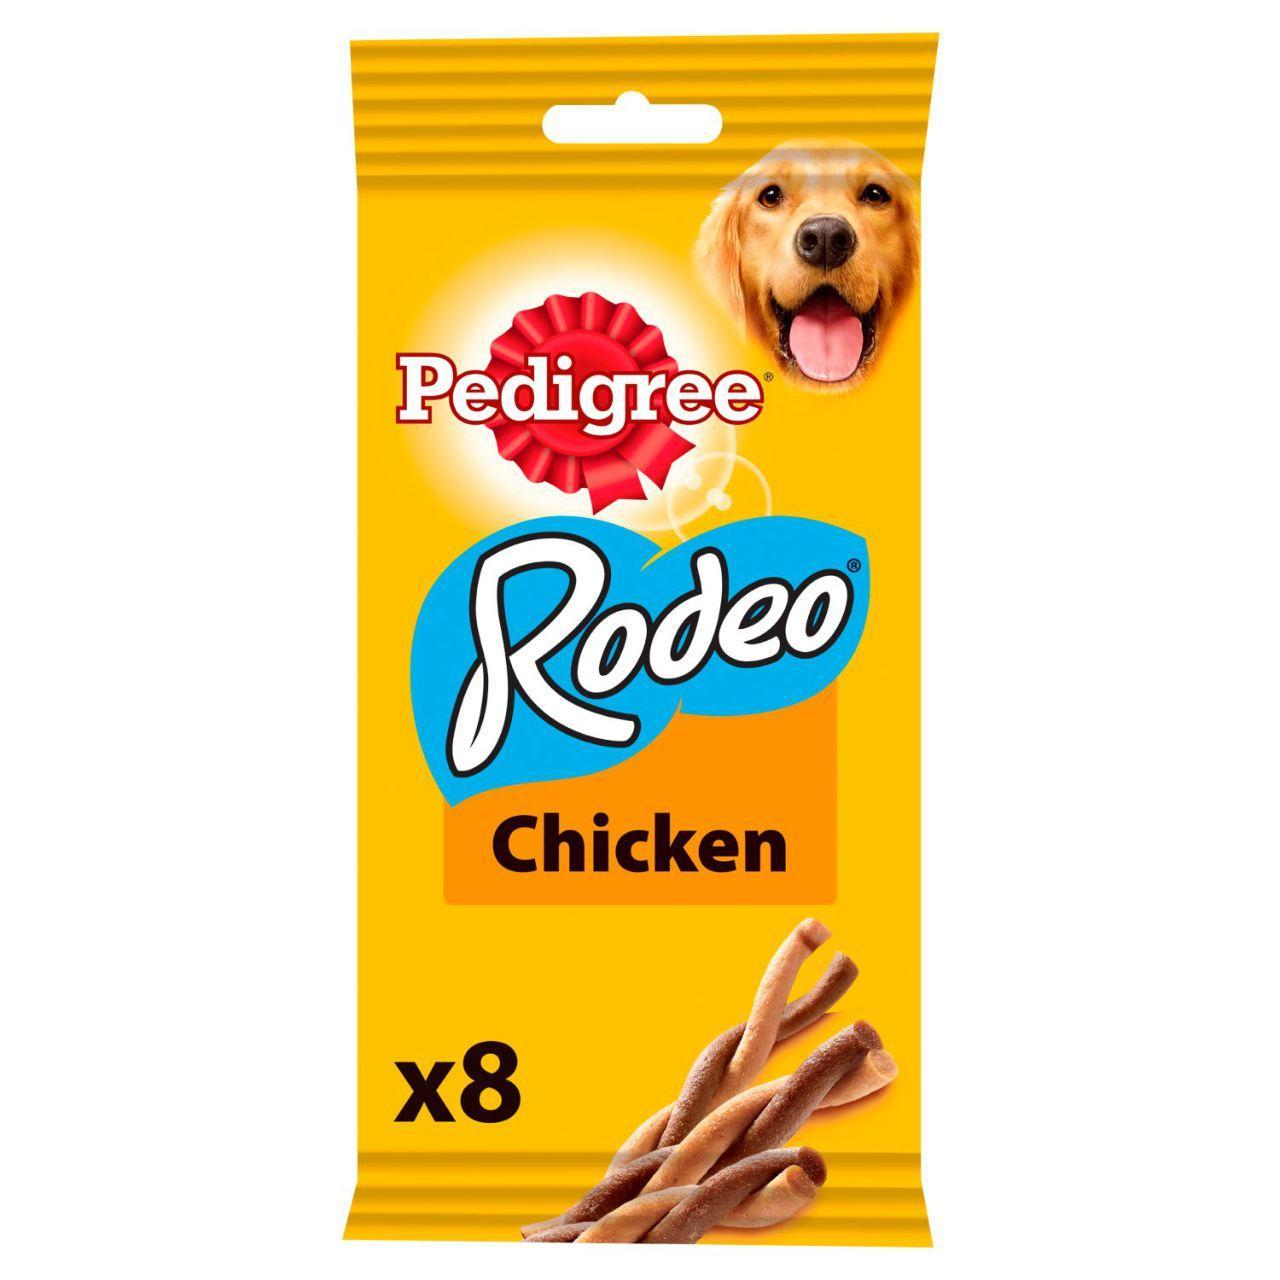 An image of Pedigree Rodeo Dog Training Treats Chicken